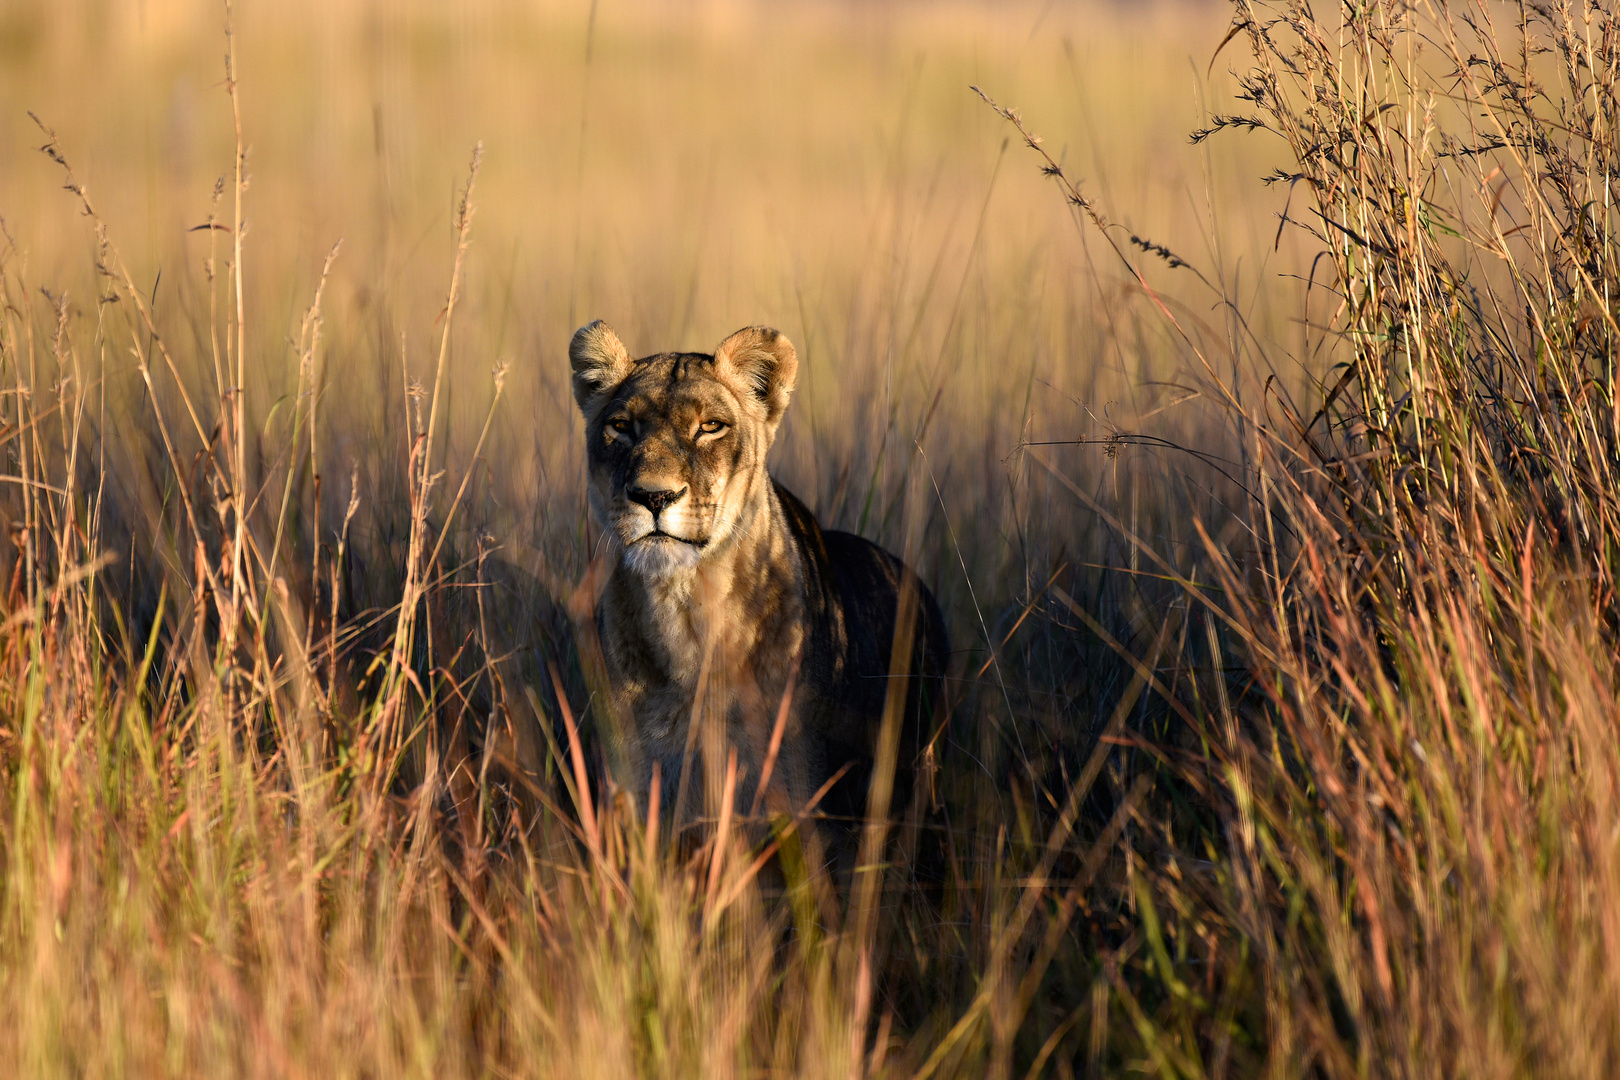 Worries of a lioness